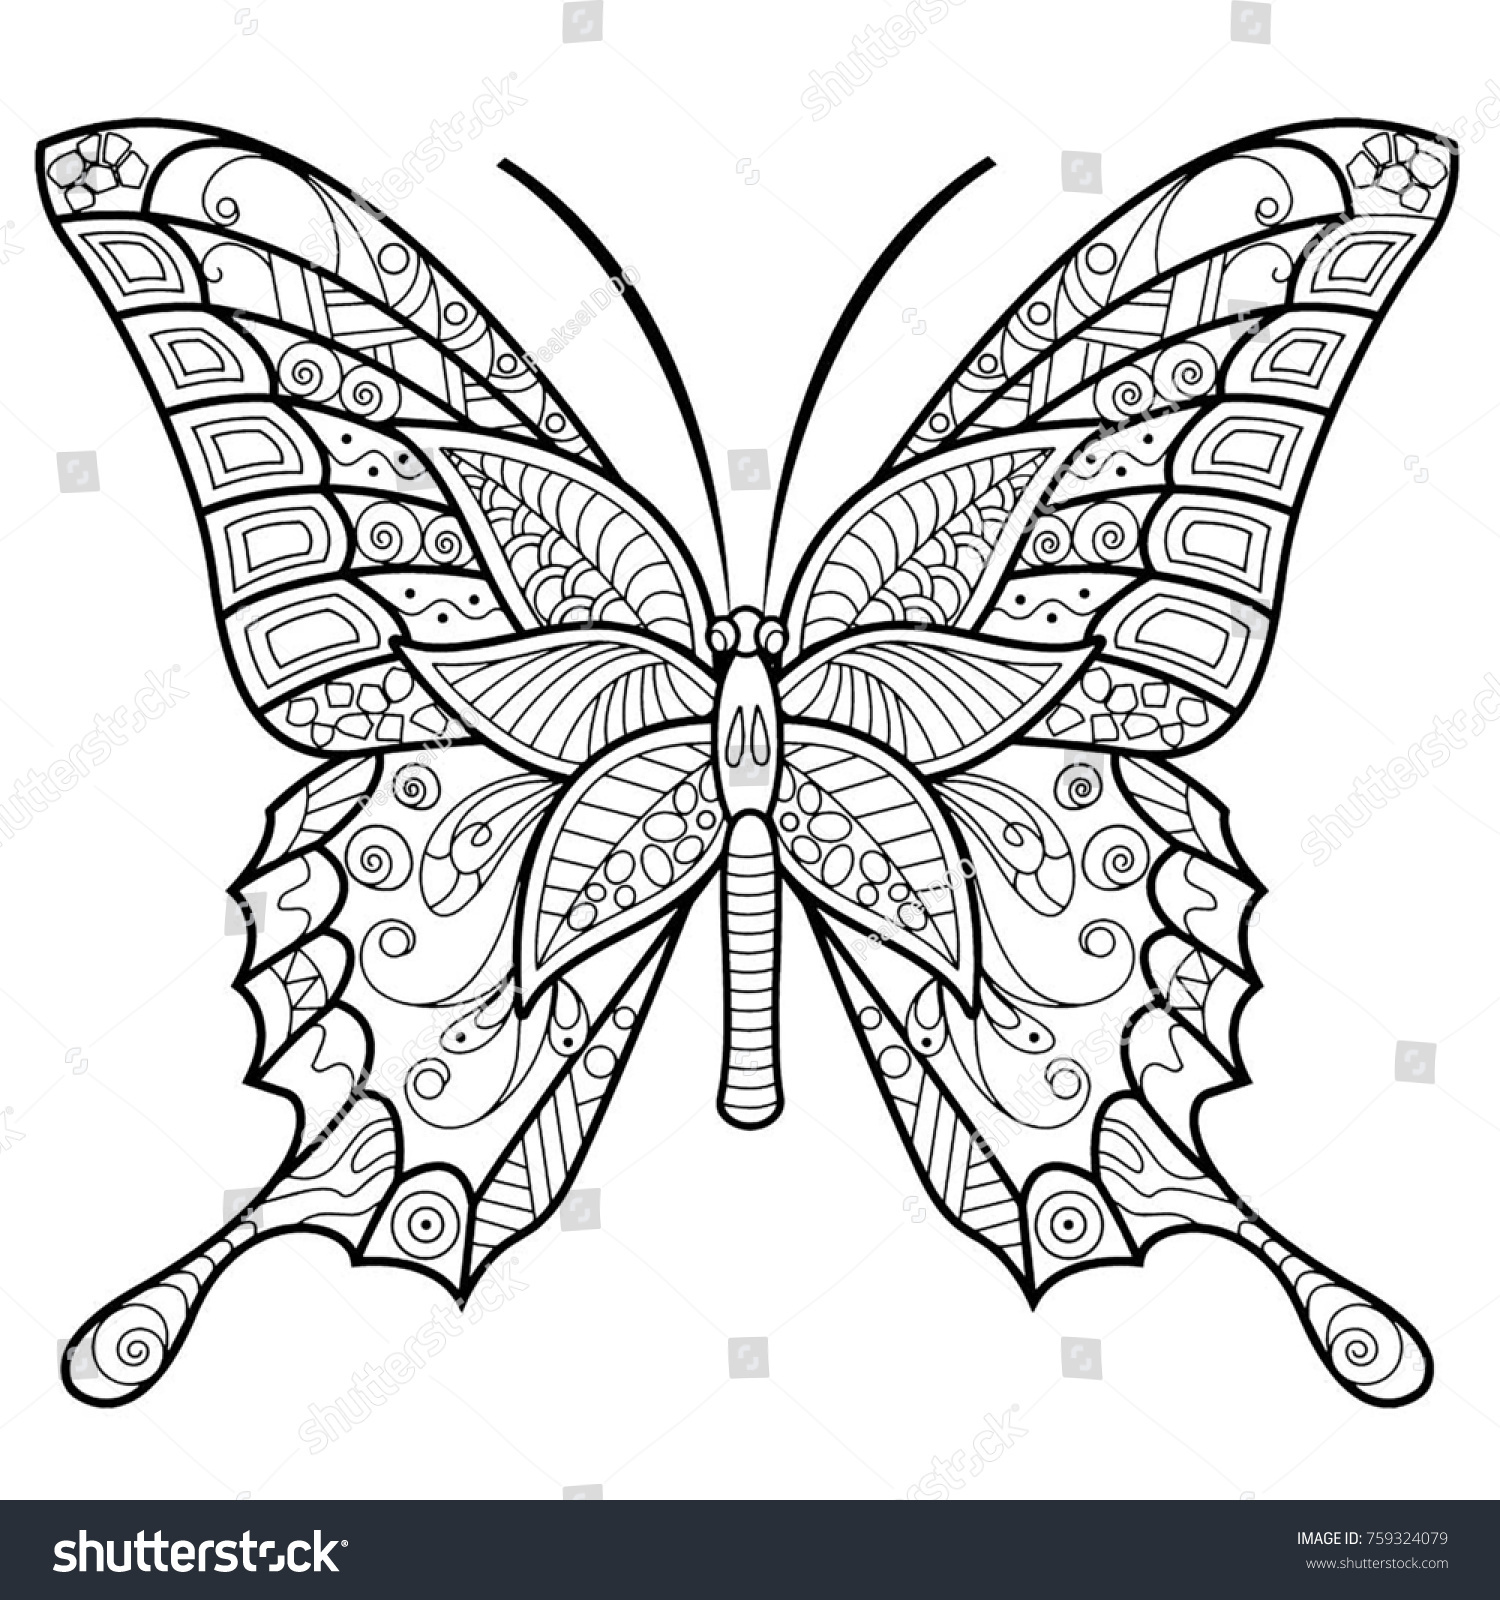 Butterfly Drawing Mandala Design Coloring Page Stock Illustration ...